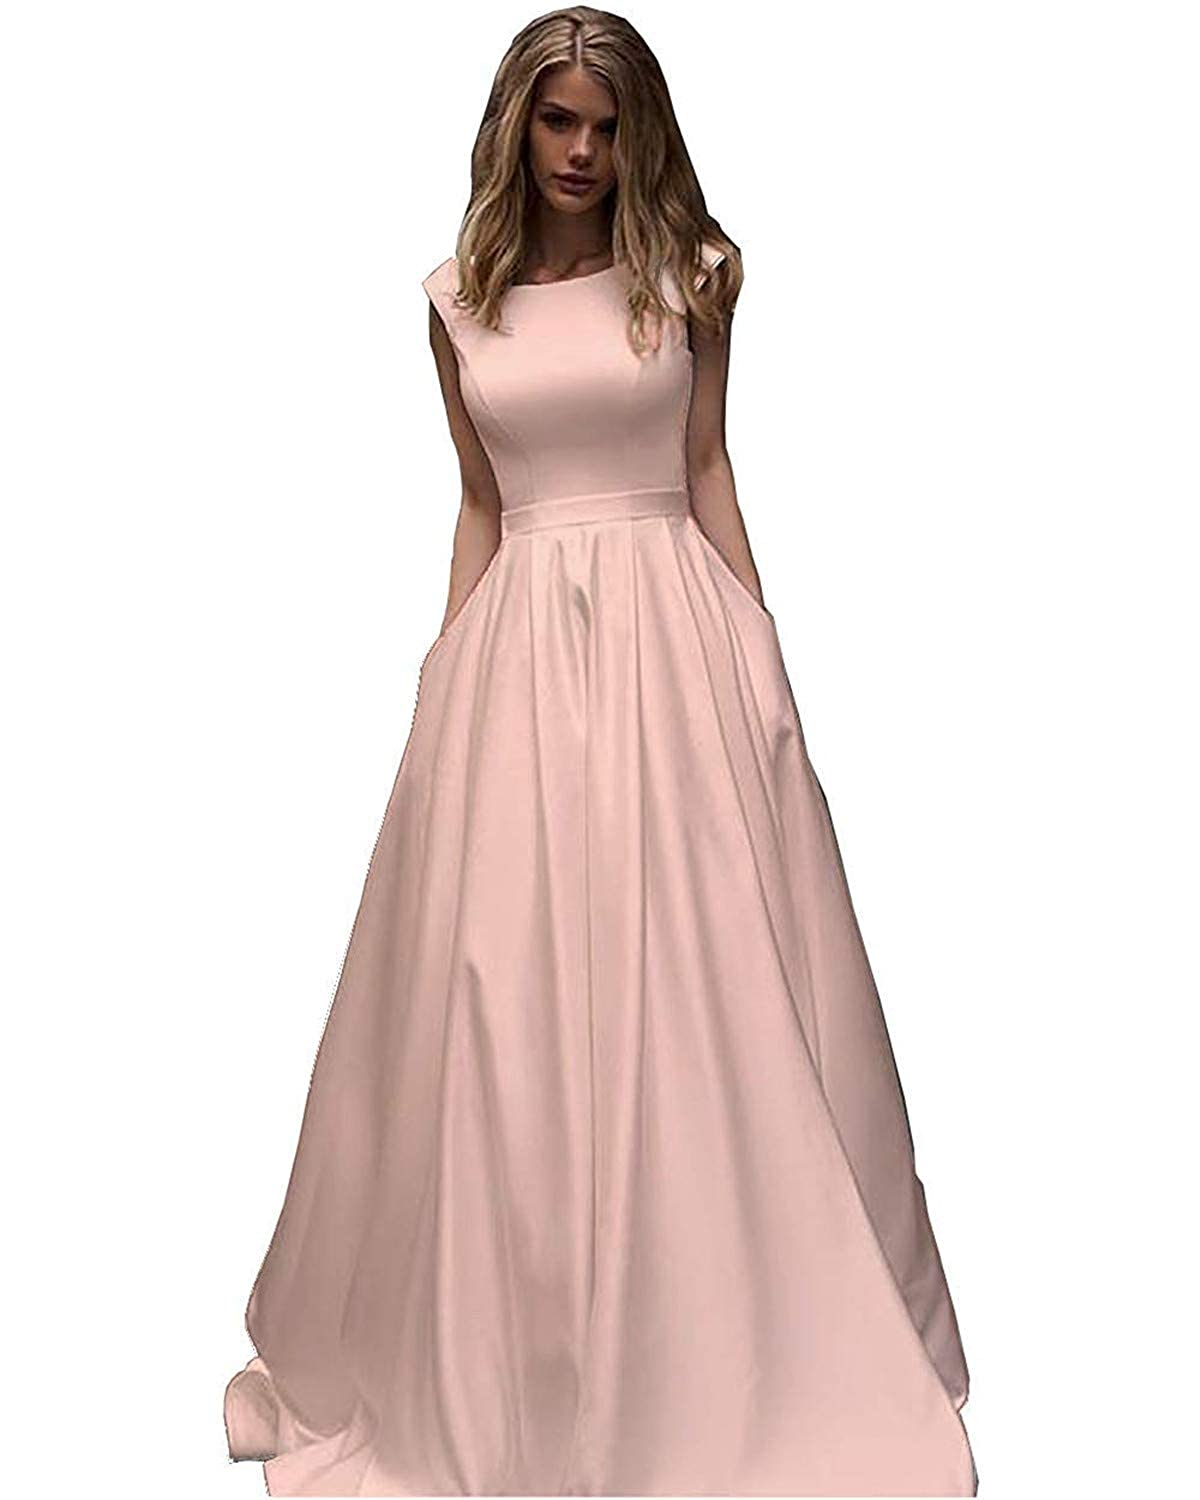 Light Pink CCBubble Womens Long Satin Prom Dresses Scoop Neck Formal Evening Wedding Party Dress